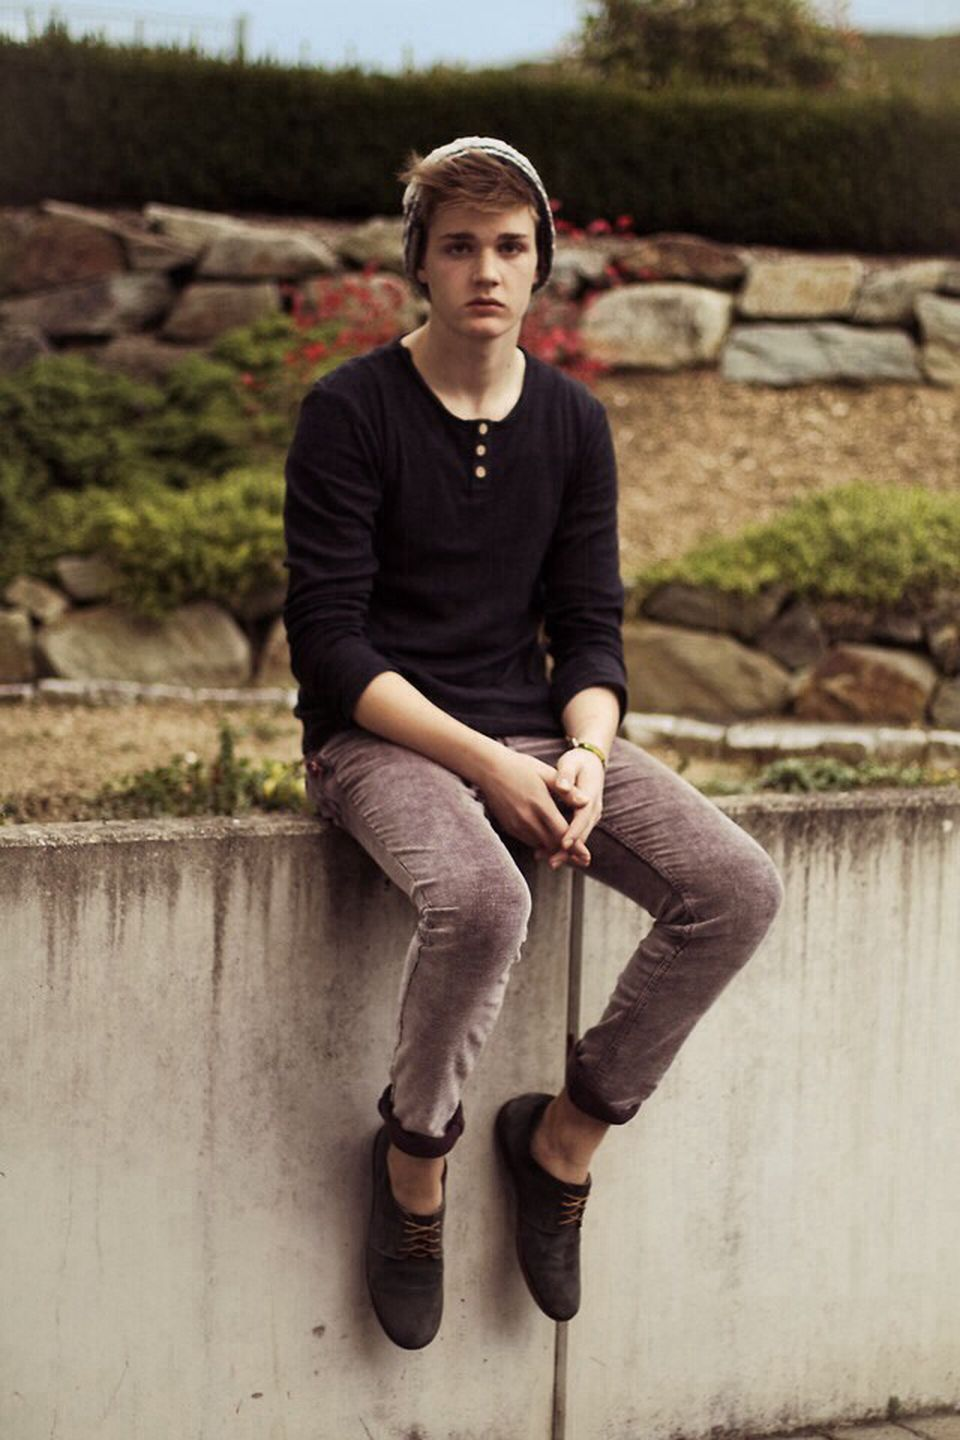 Casual Indie Mens Fashion Outfits Style 8: Casual Indie Mens Fashion Outfits Style 1